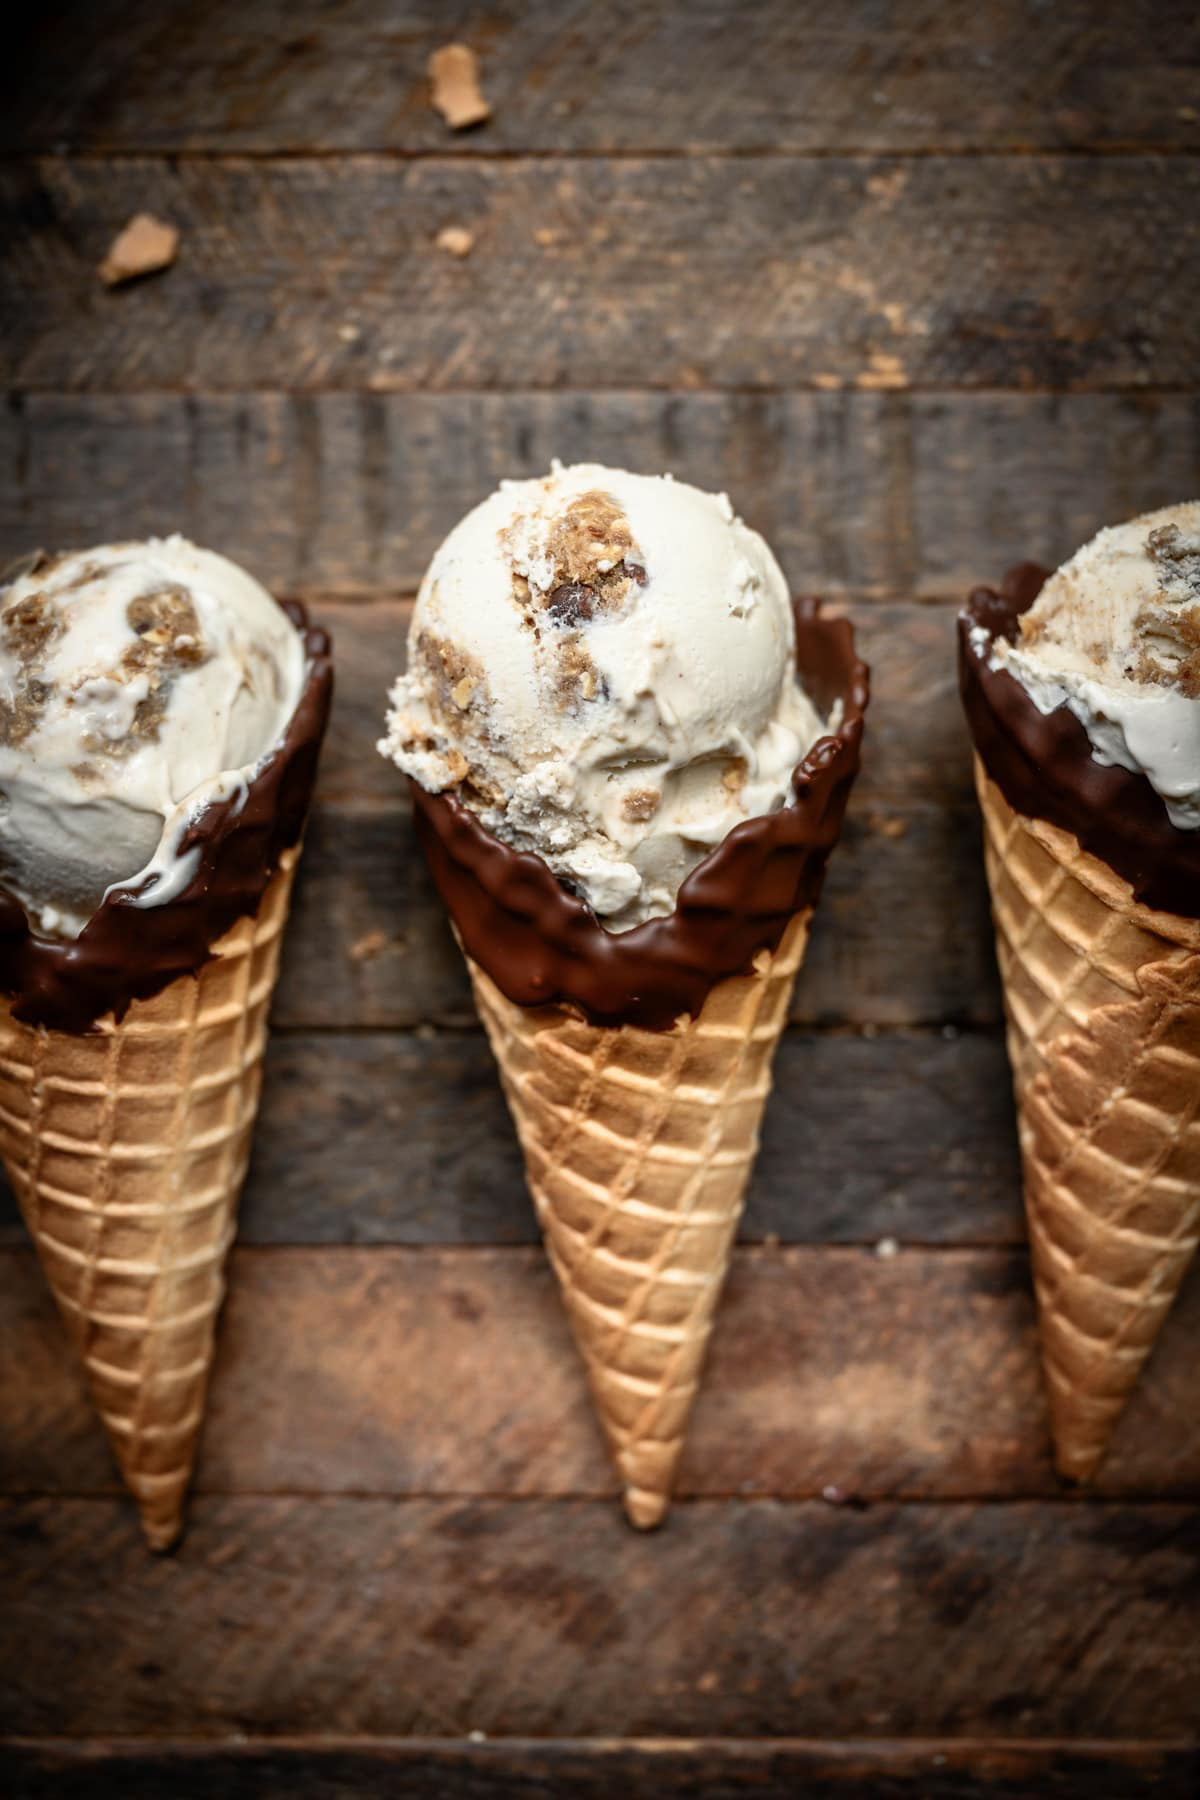 Overhead view of cookie dough ice cream in chocolate-dipped cones on wood background